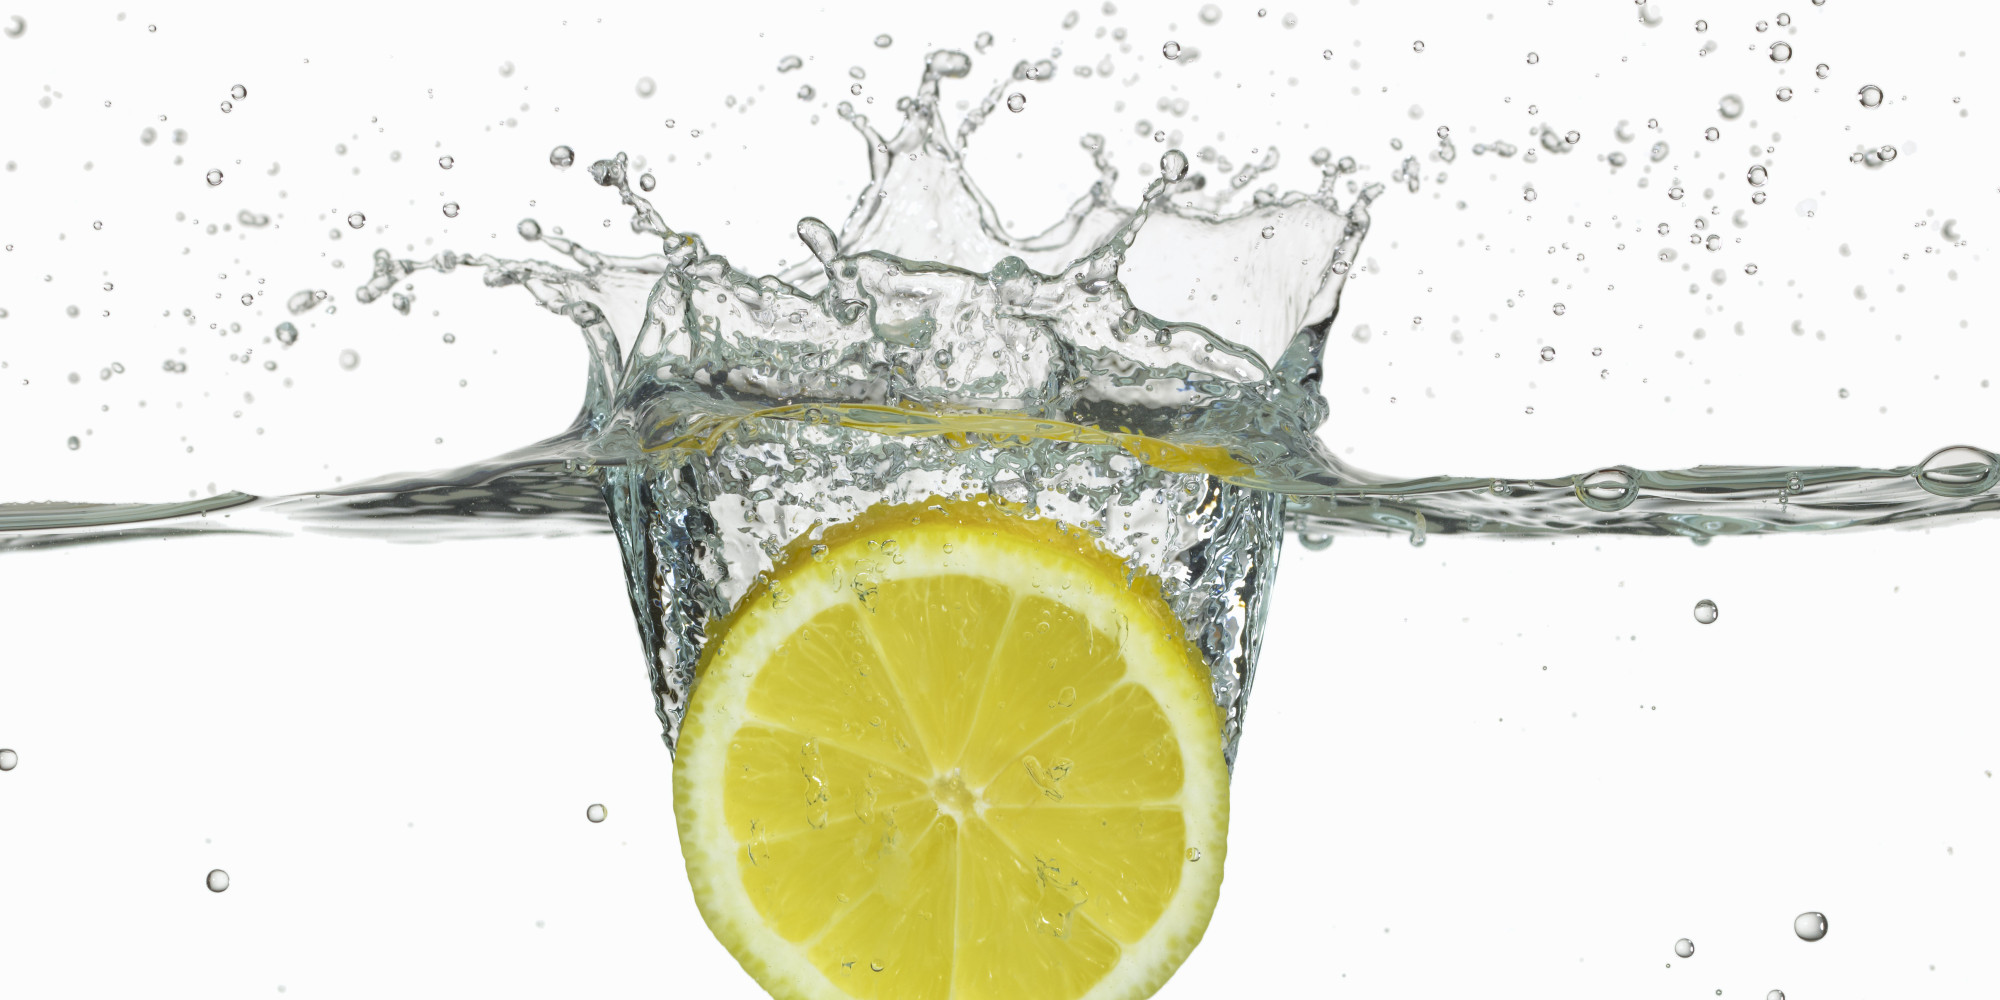 Best Way Juice Lemon 6 Cool Things About Lemon Juice You Probably Didn 39t Know